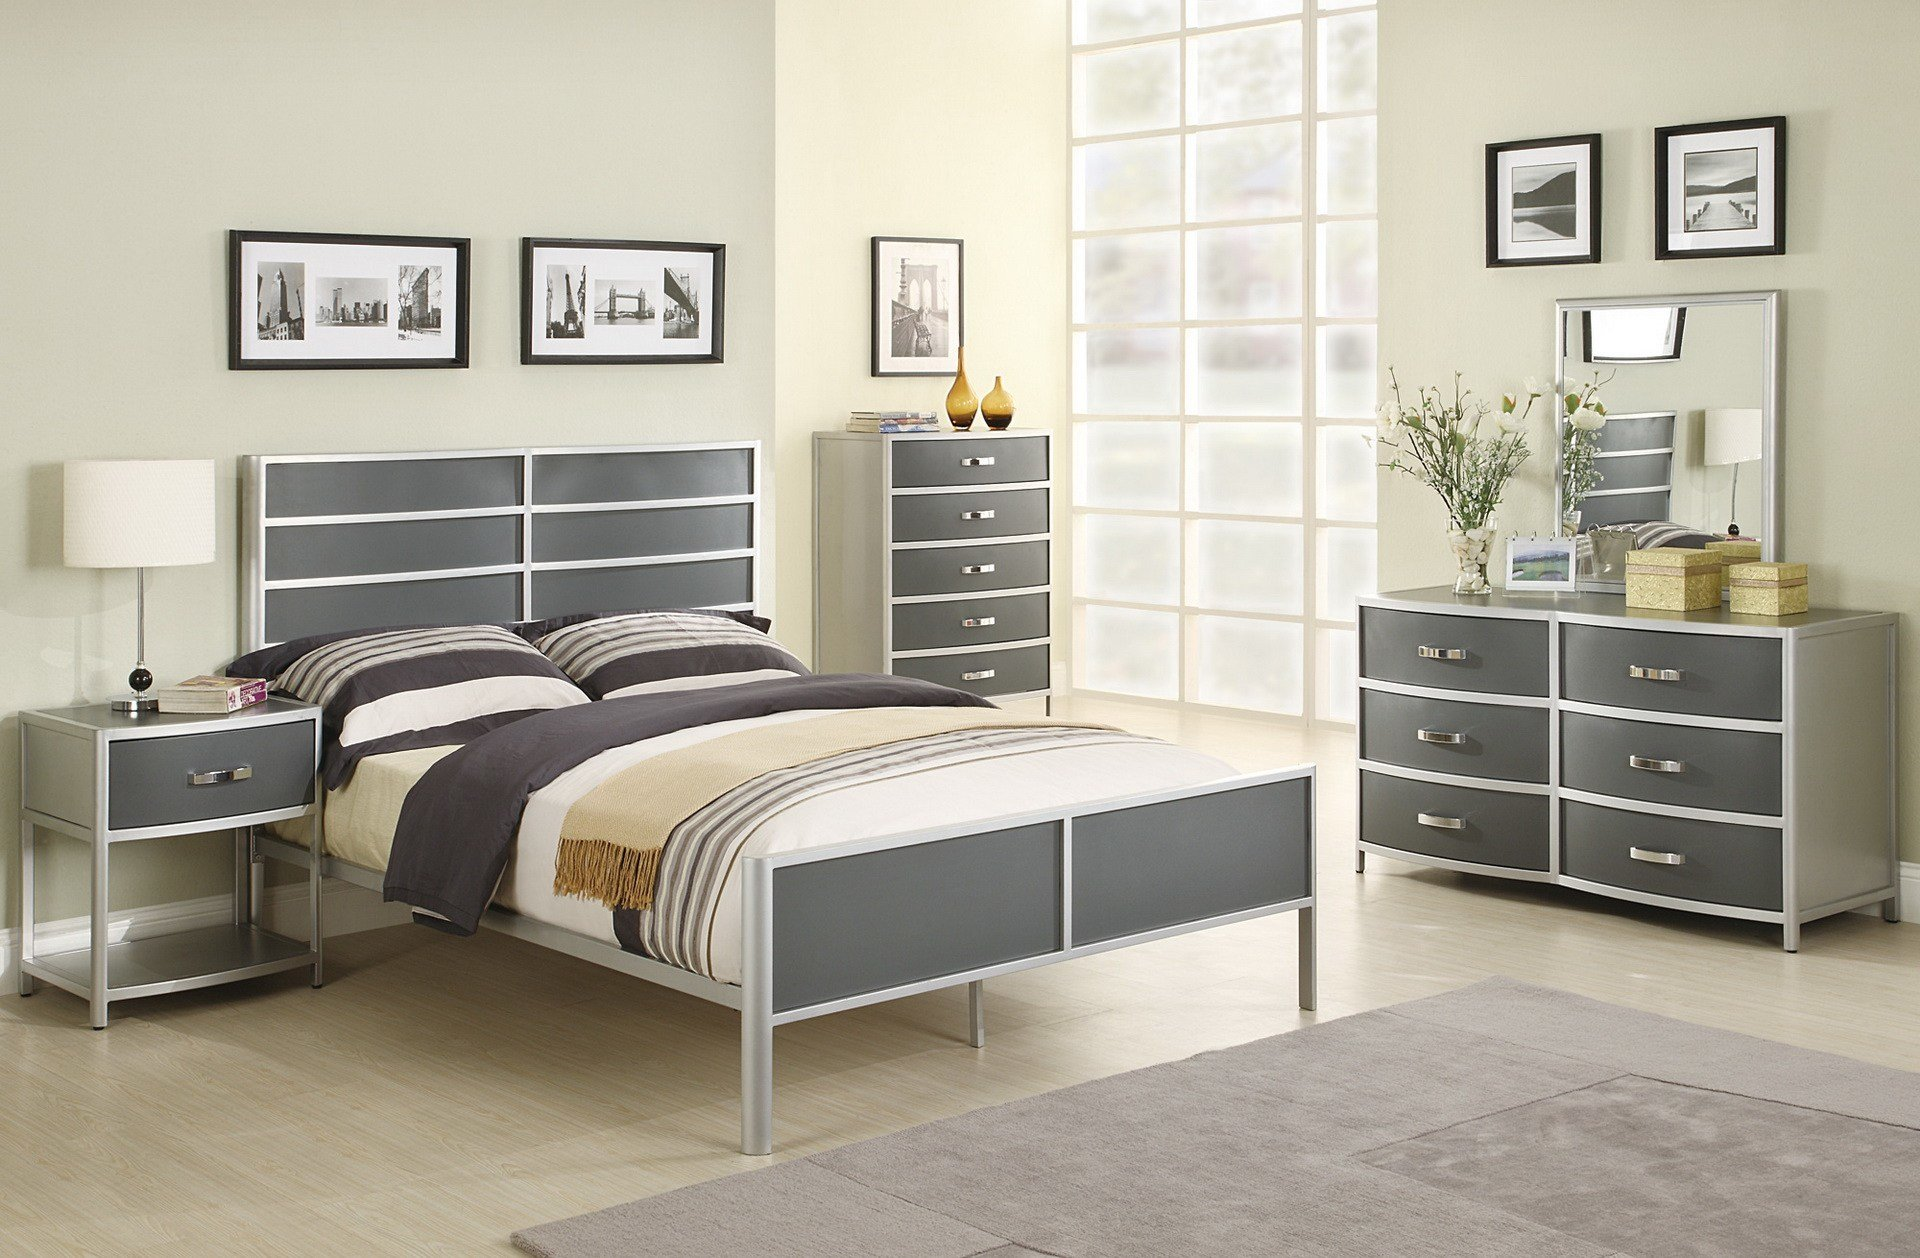 Best Silver Bedroom Furniture Sets Reflect A Clean And With Pictures